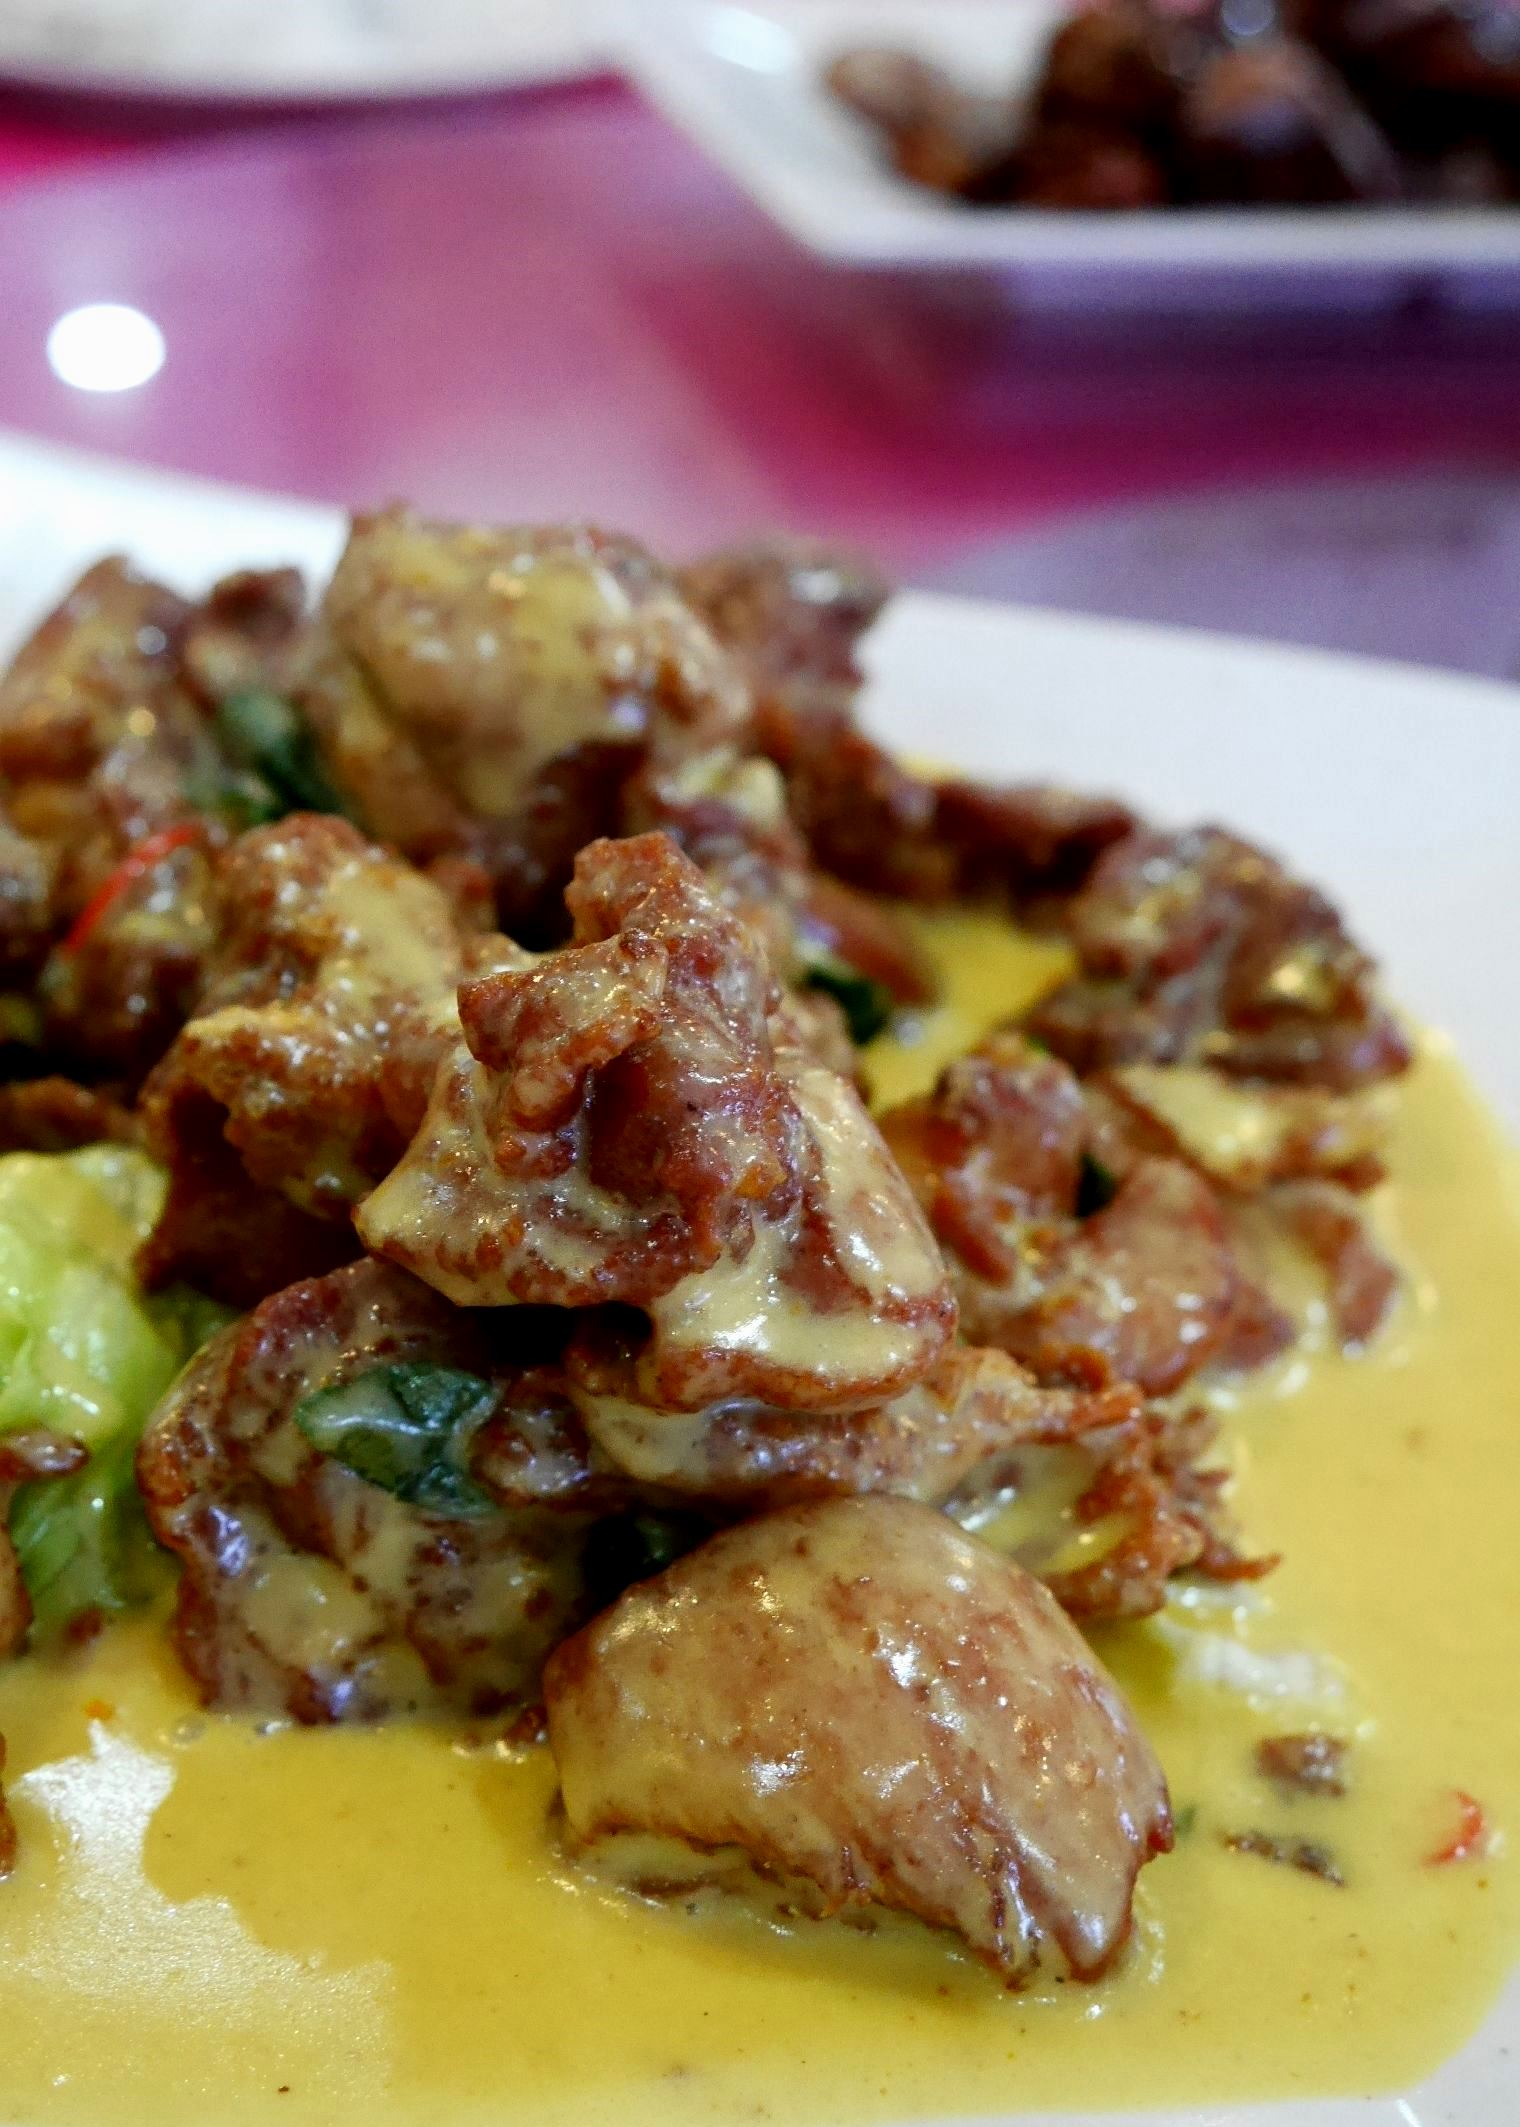 Deep-friend chicken in coconut and turmeric sauce